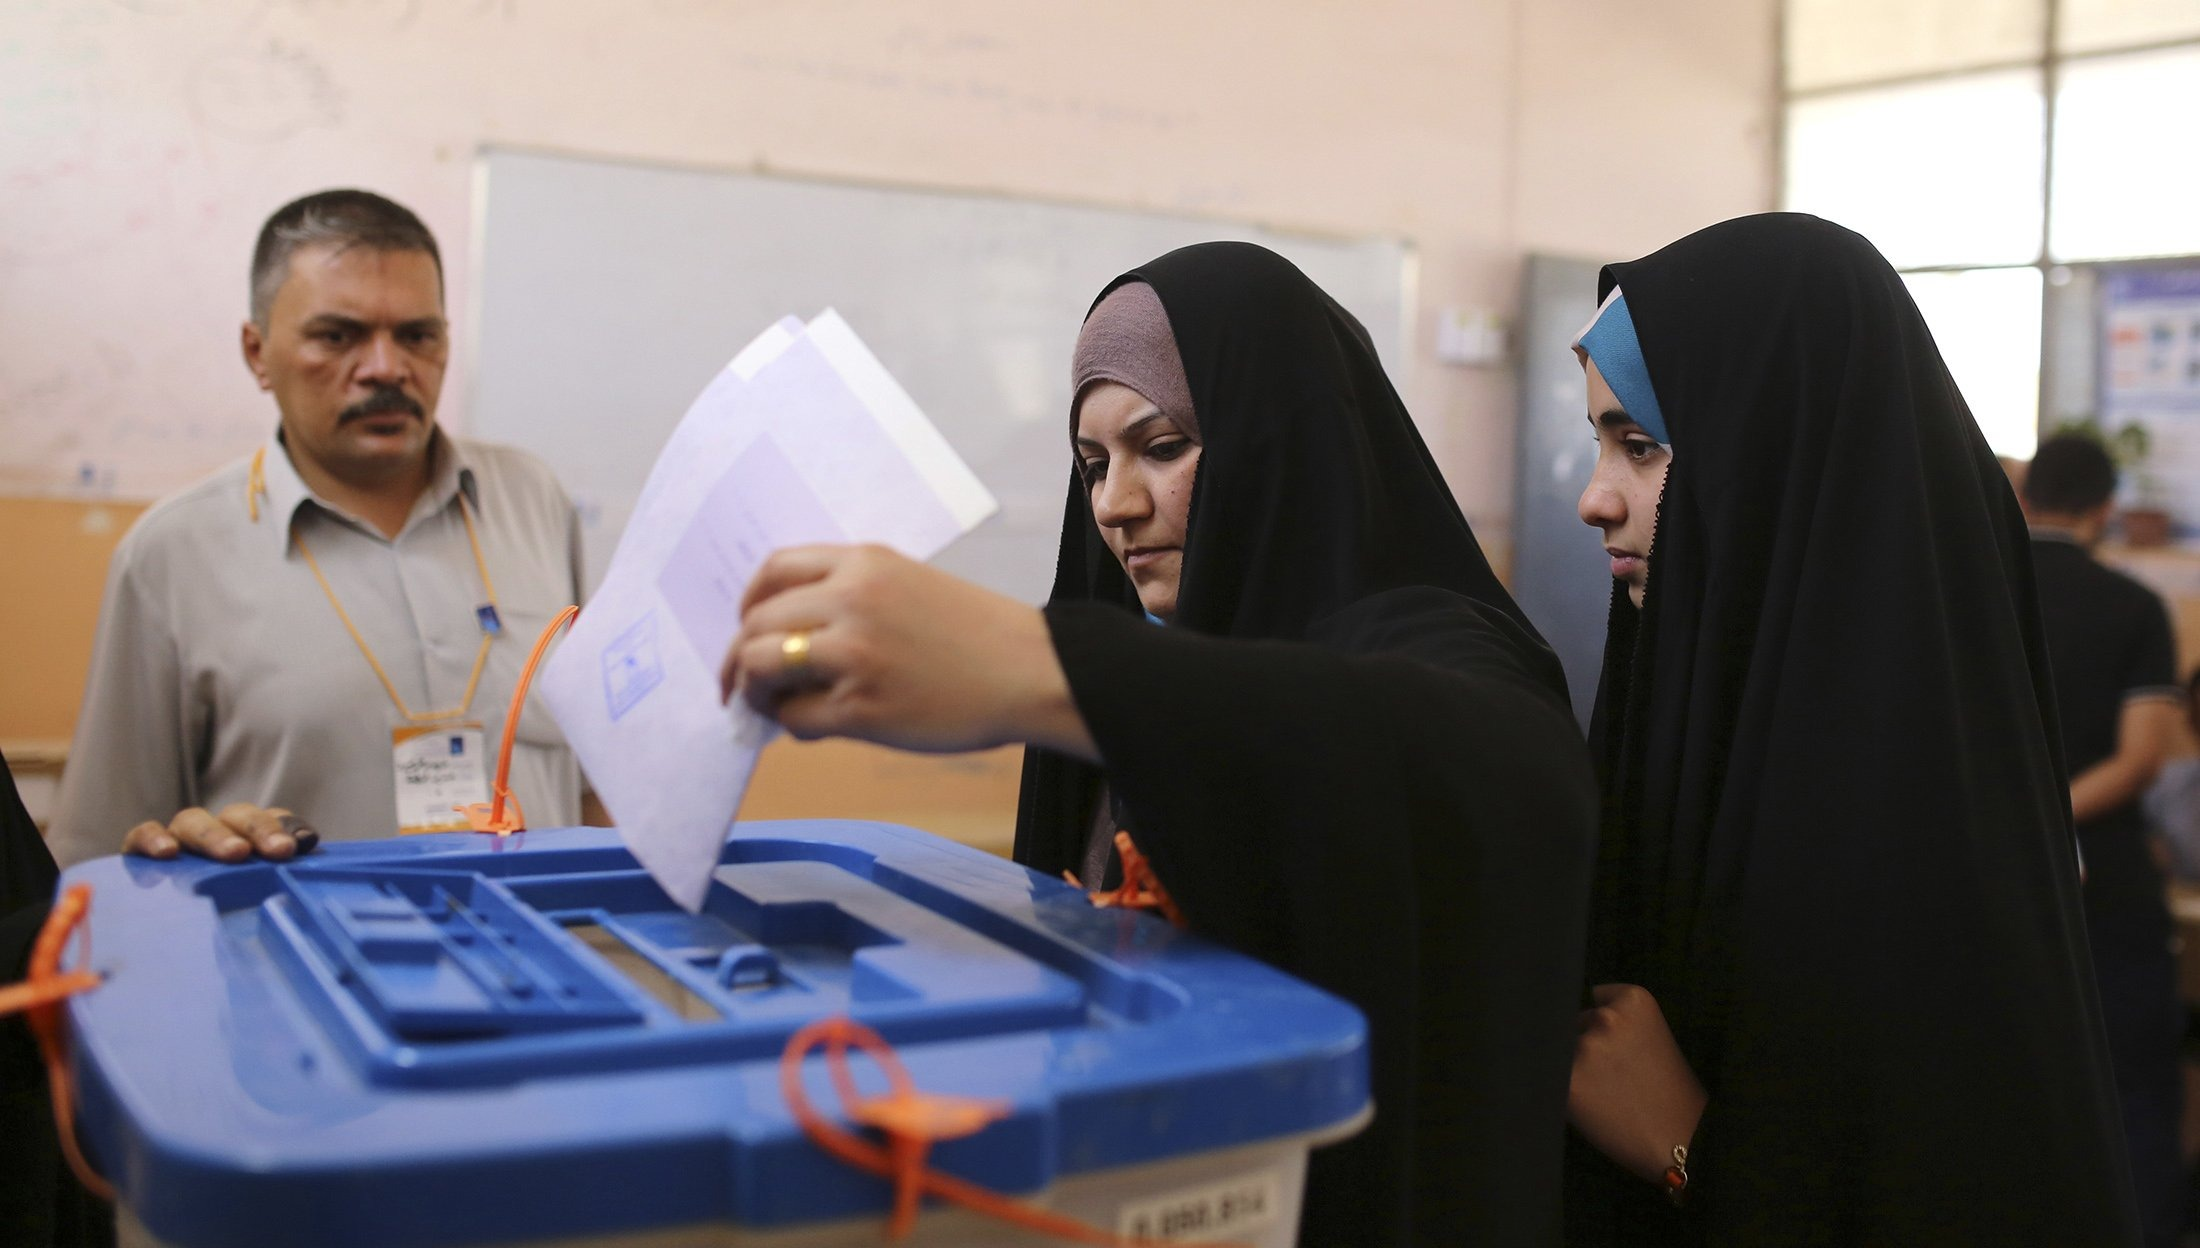 A resident casts her ballot at a polling station in Najaf, Iraq, on April 30, 2014